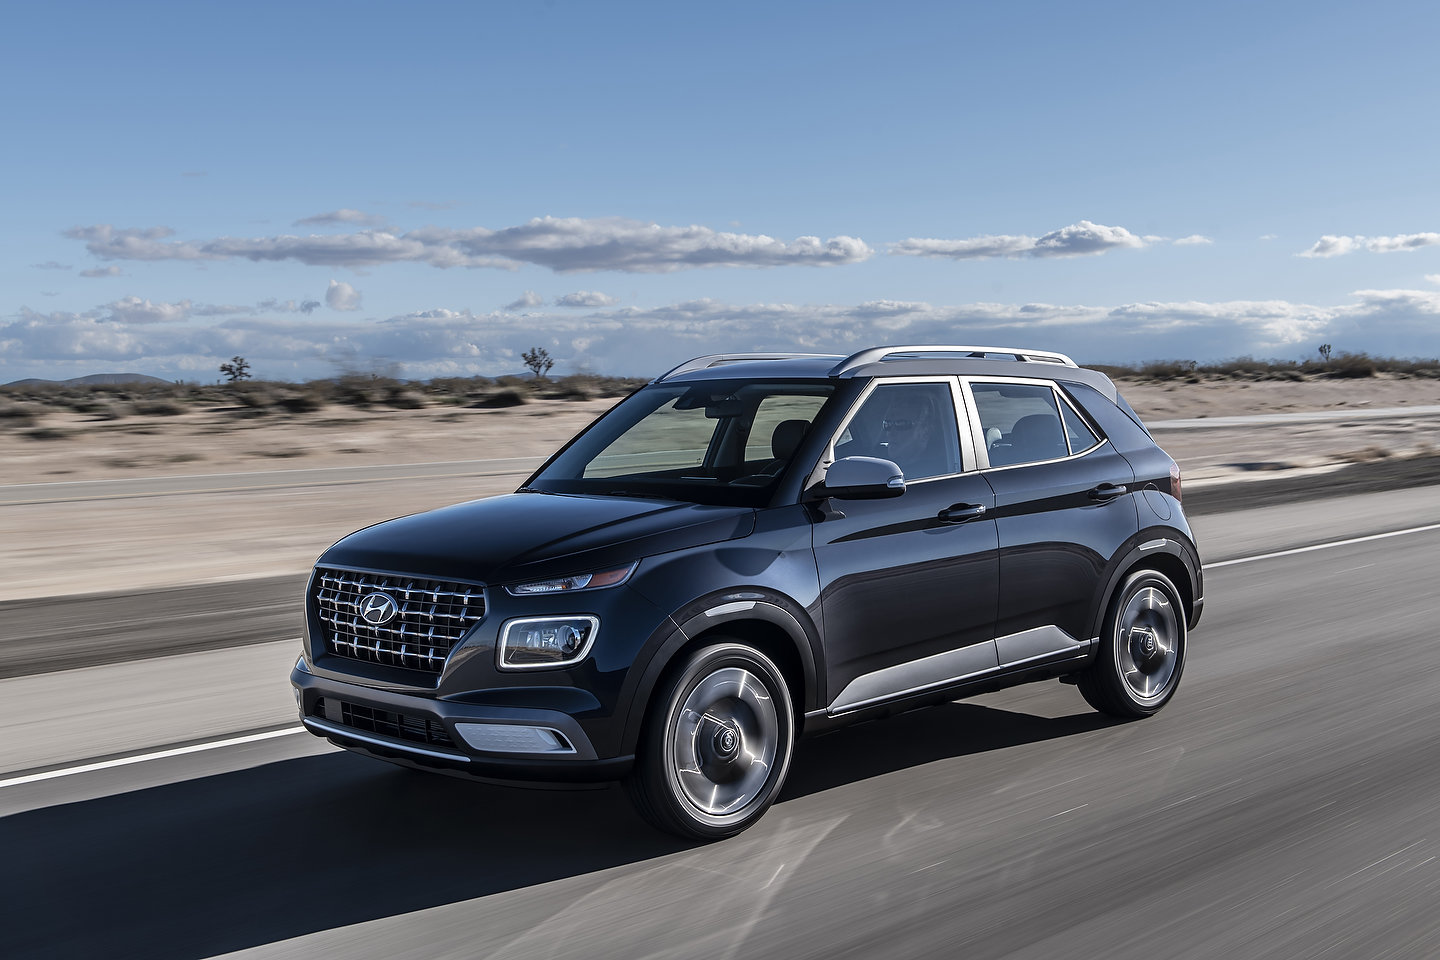 10 Cheapest Suvs On Sale In Canada In 2020 Motor Illustrated